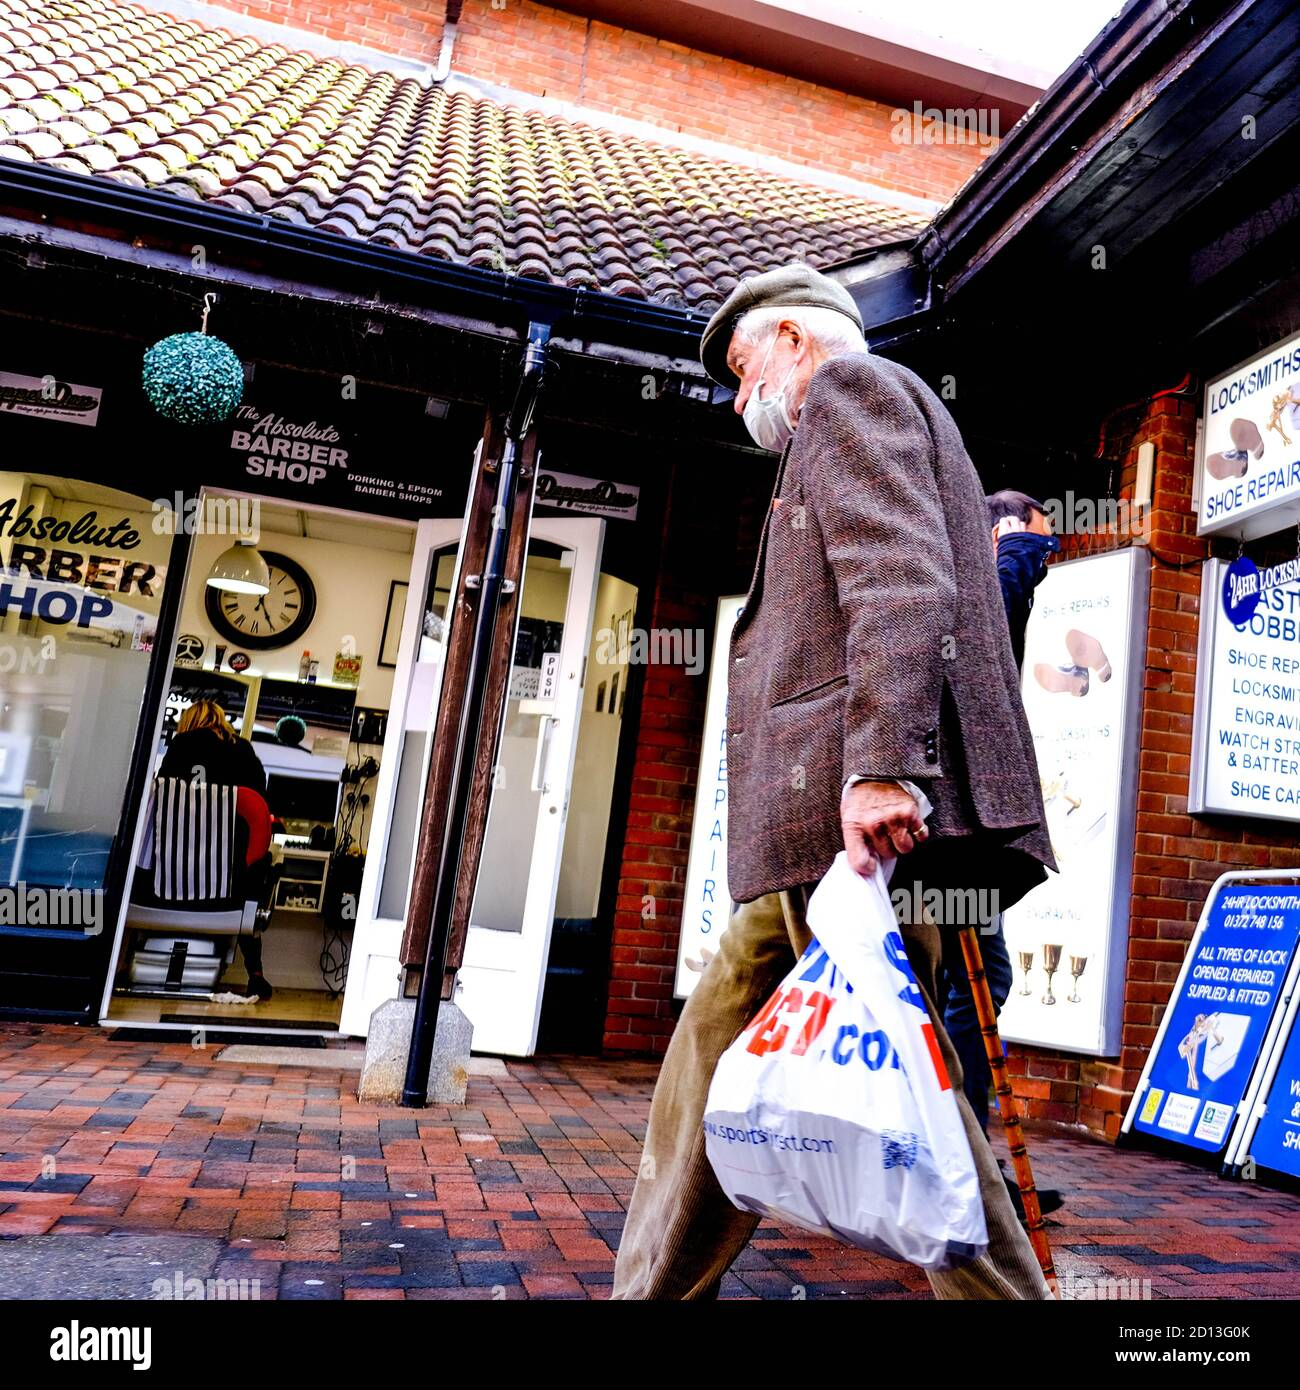 London UK October 2020, Shoppers Wearing Protective Face Coverings Reducing The Risk Of COVID-19 Stock Photo